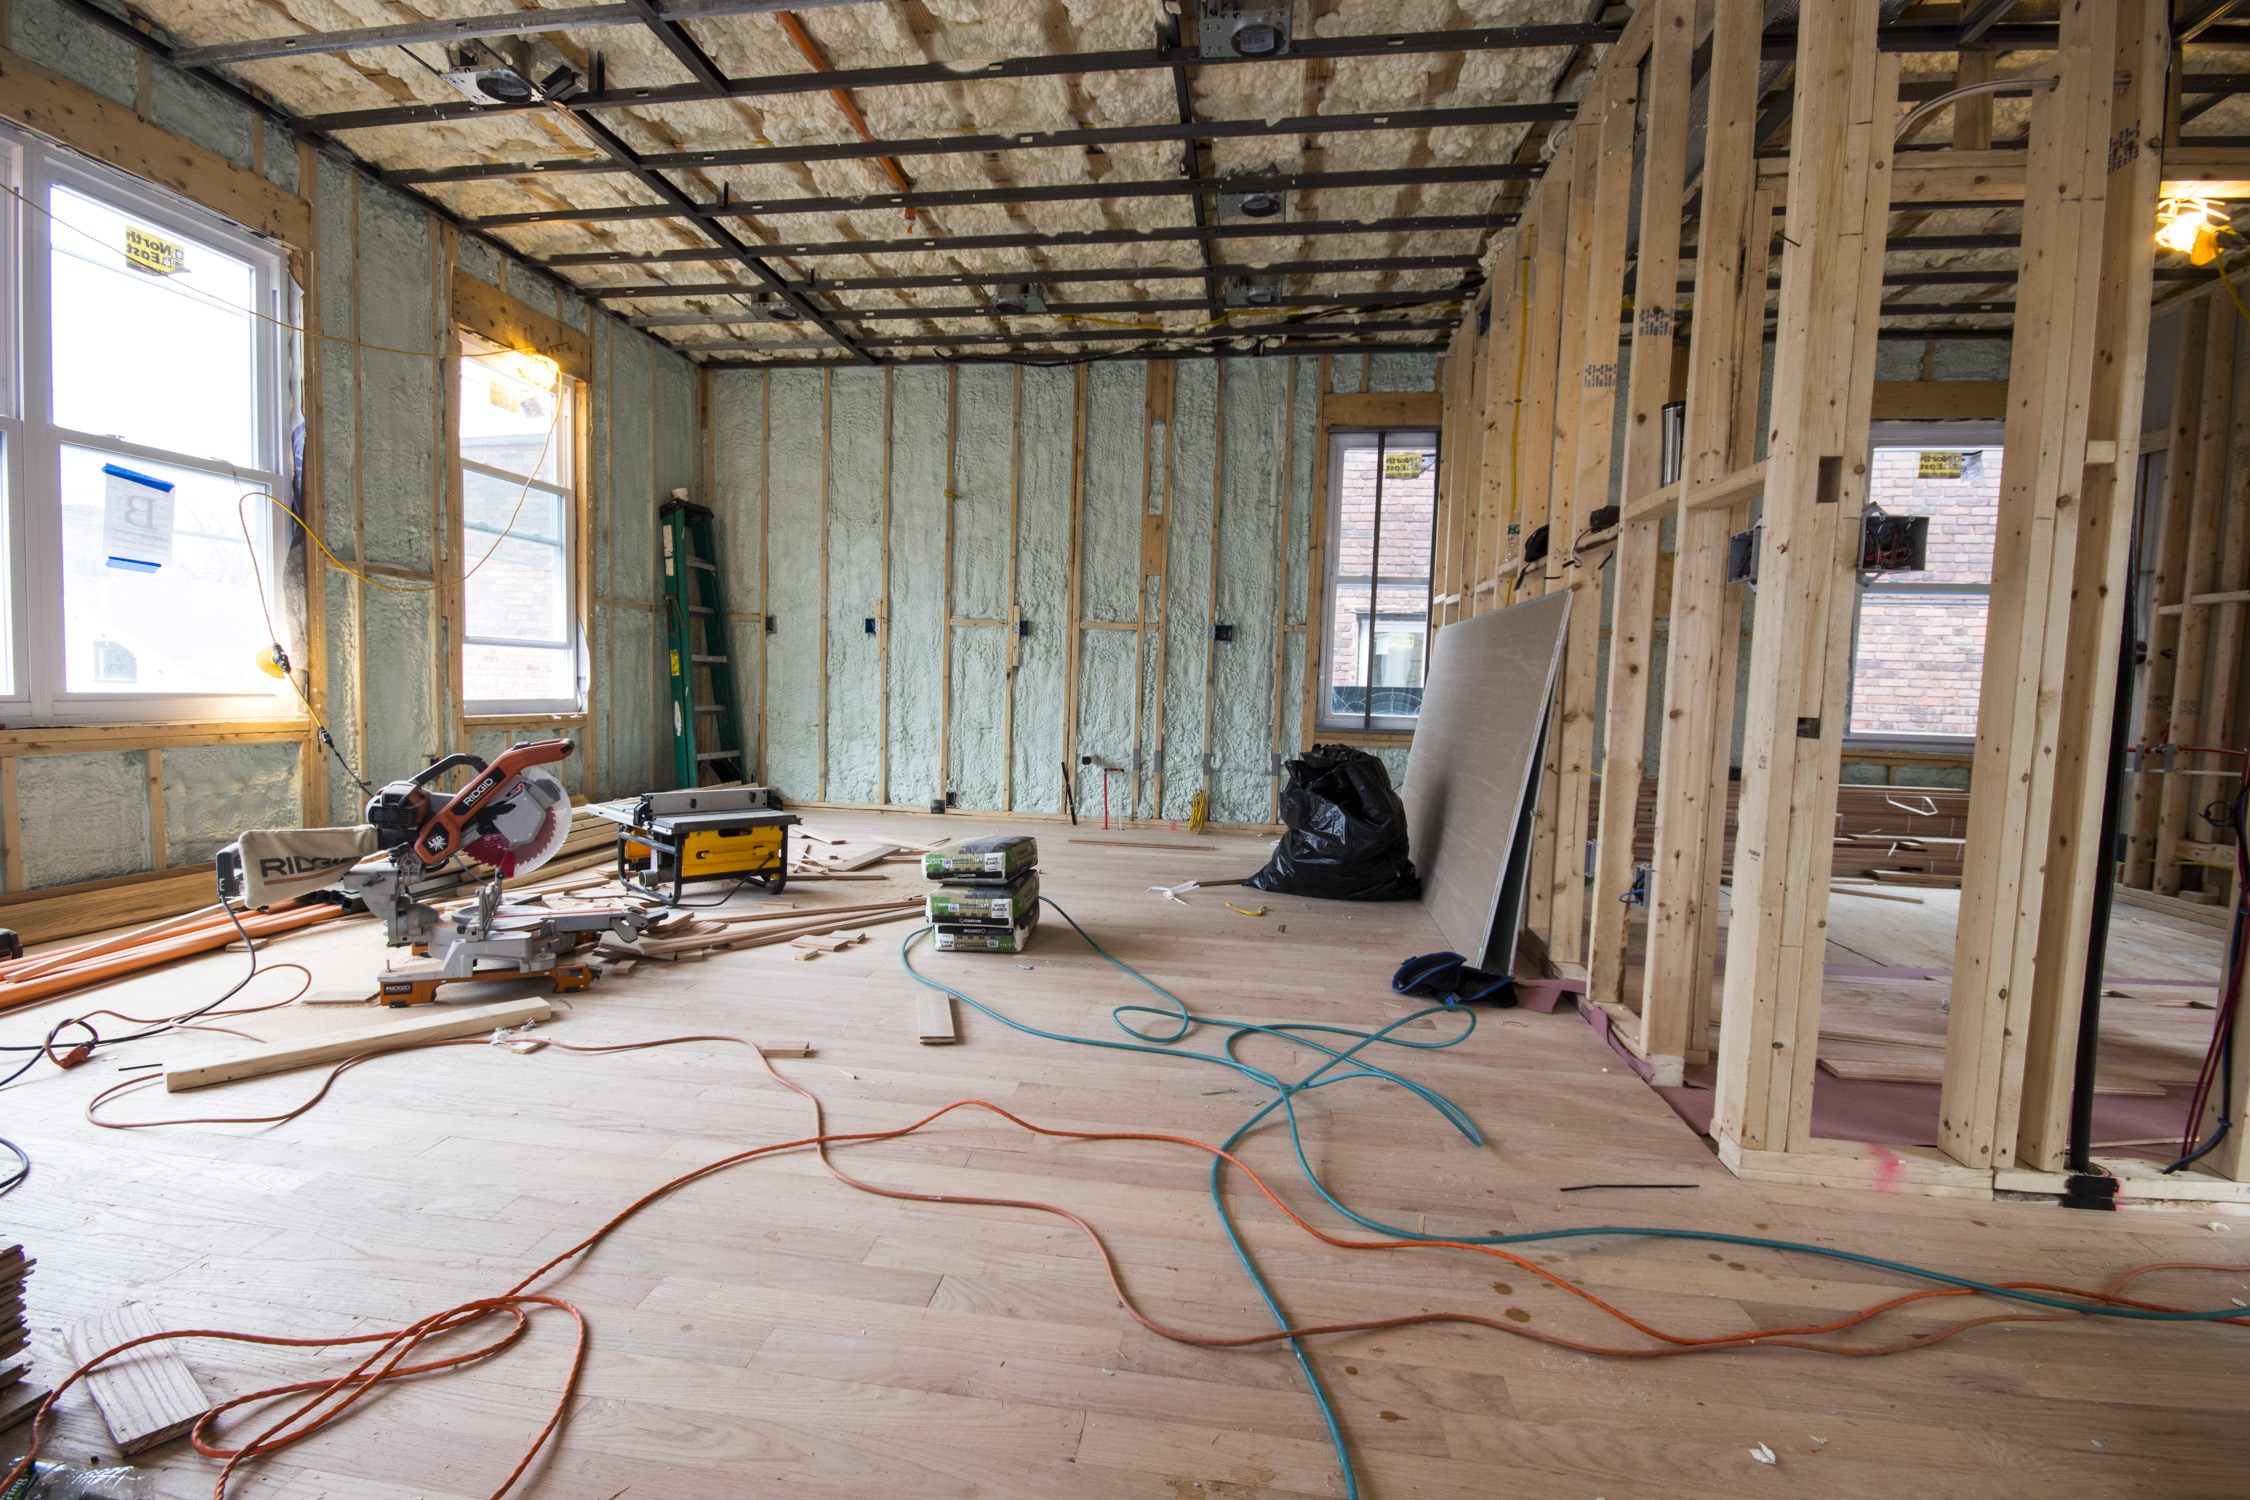 83 parker street home renovation boston general contractor_18